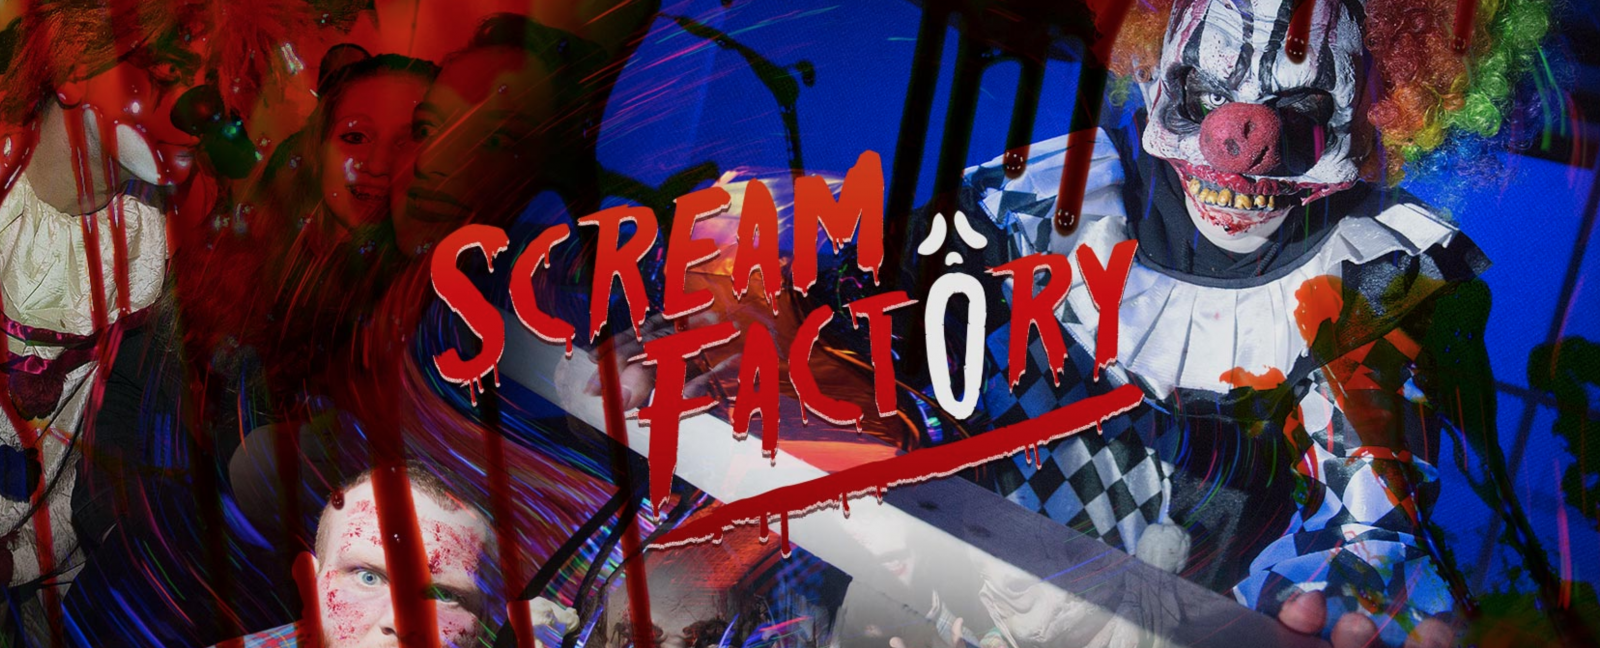 Lead Image of Scream Factory 2018 Halloween Experience featuring killer clowns for Fashion Voyeur Blog